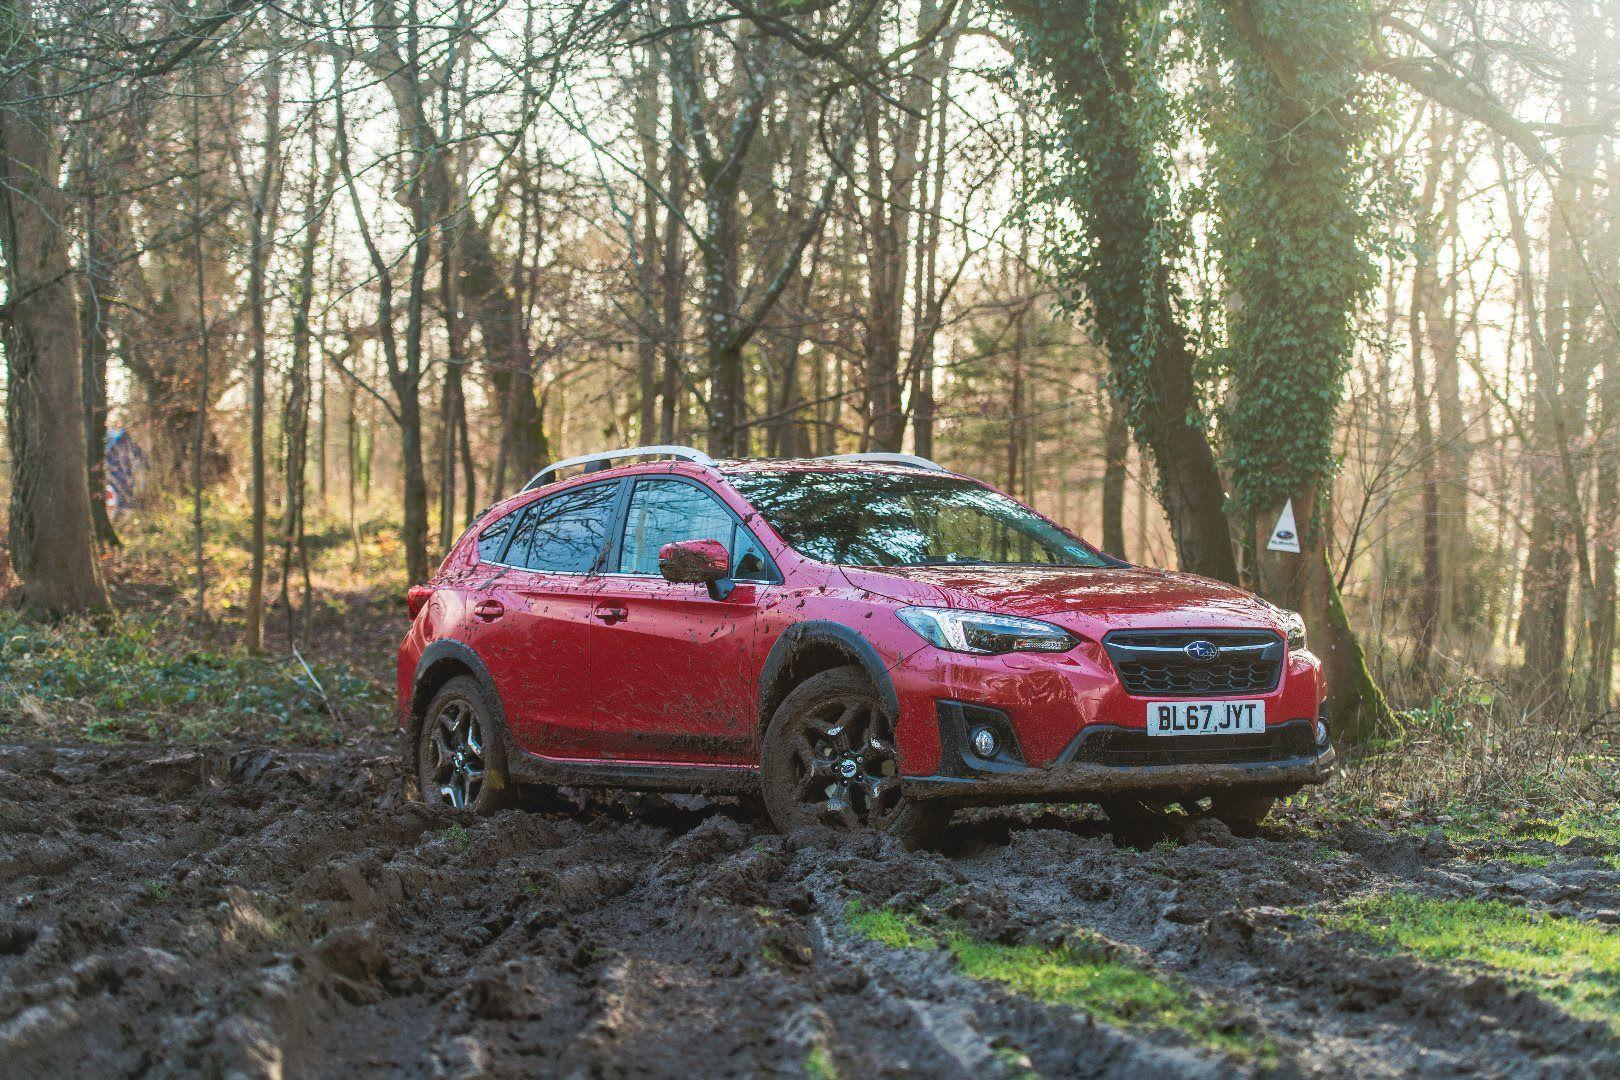 SUBARU TAKES VISITORS OFF-ROAD AS THE OFFICIAL AUTOMOTIVE PARTNER OF THE GREAT BRITISH SHOOTING SHOW 2018